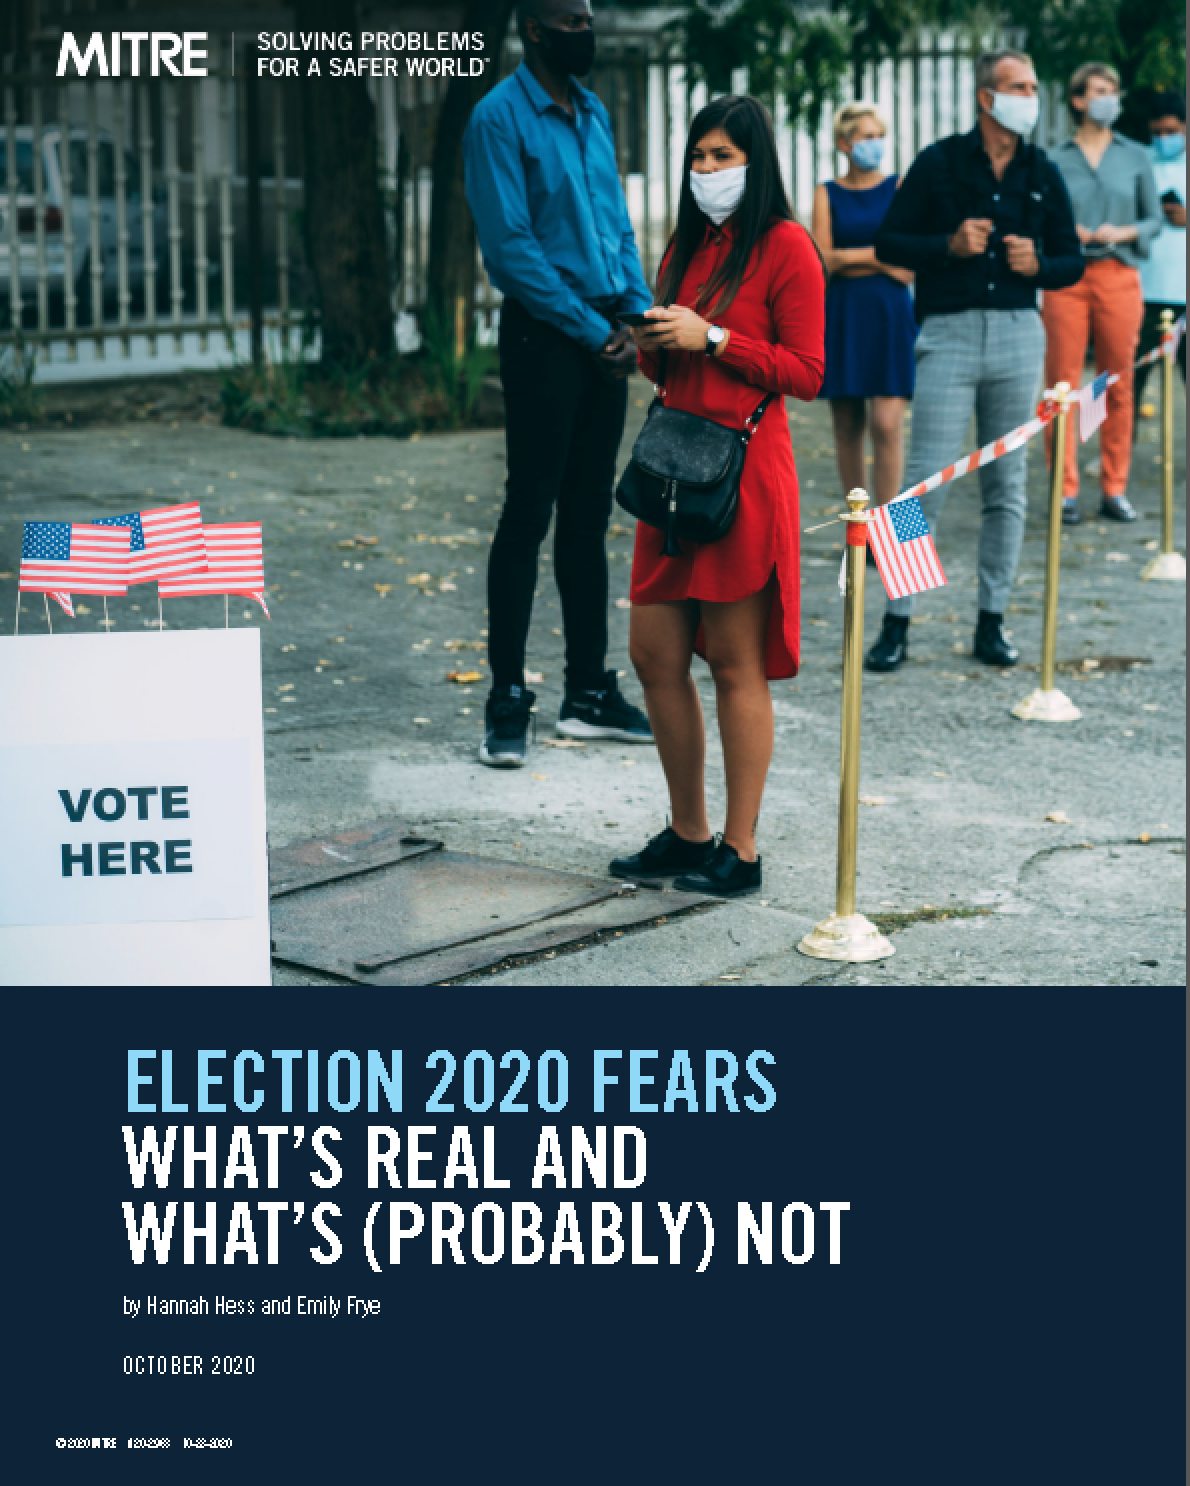 Election 2020 Fears